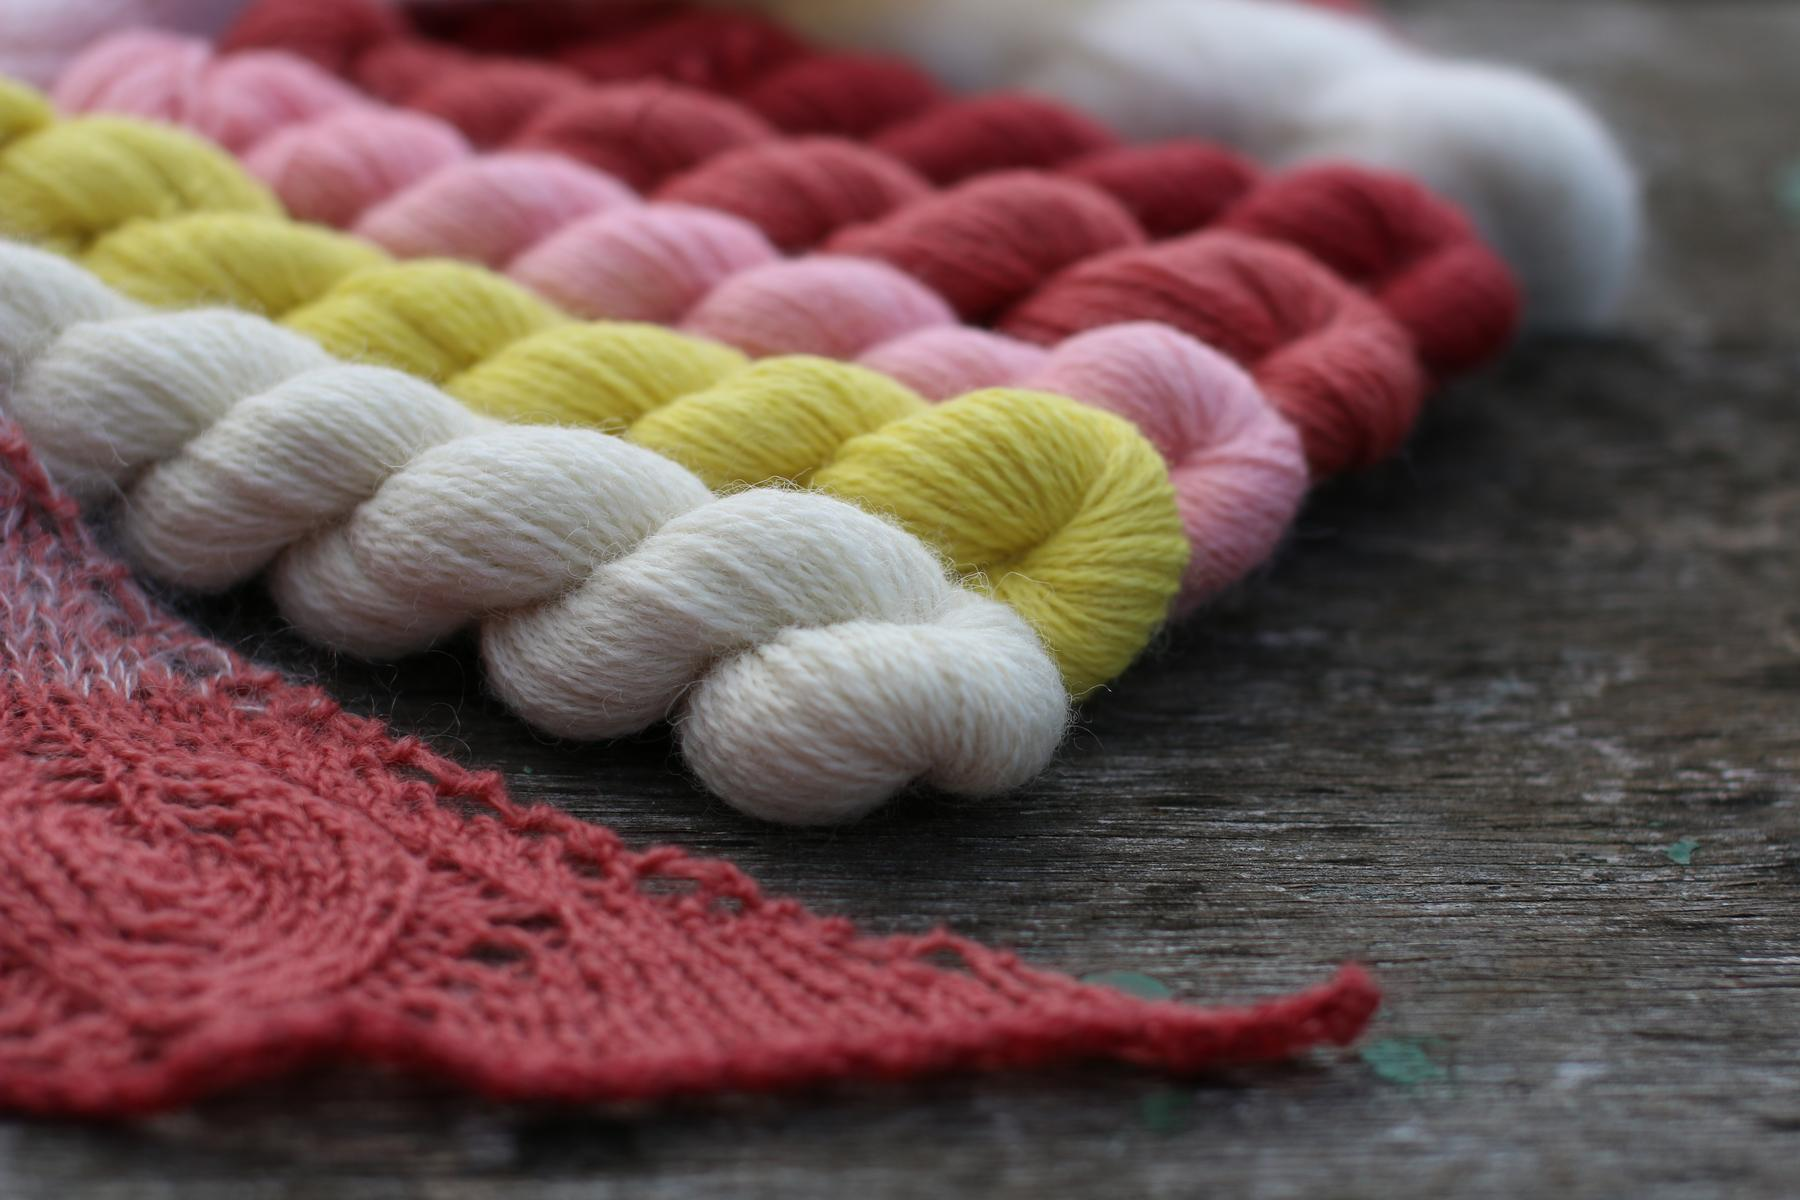 Several skeins of wool in a variety of colours, white, lemon, pink, and red